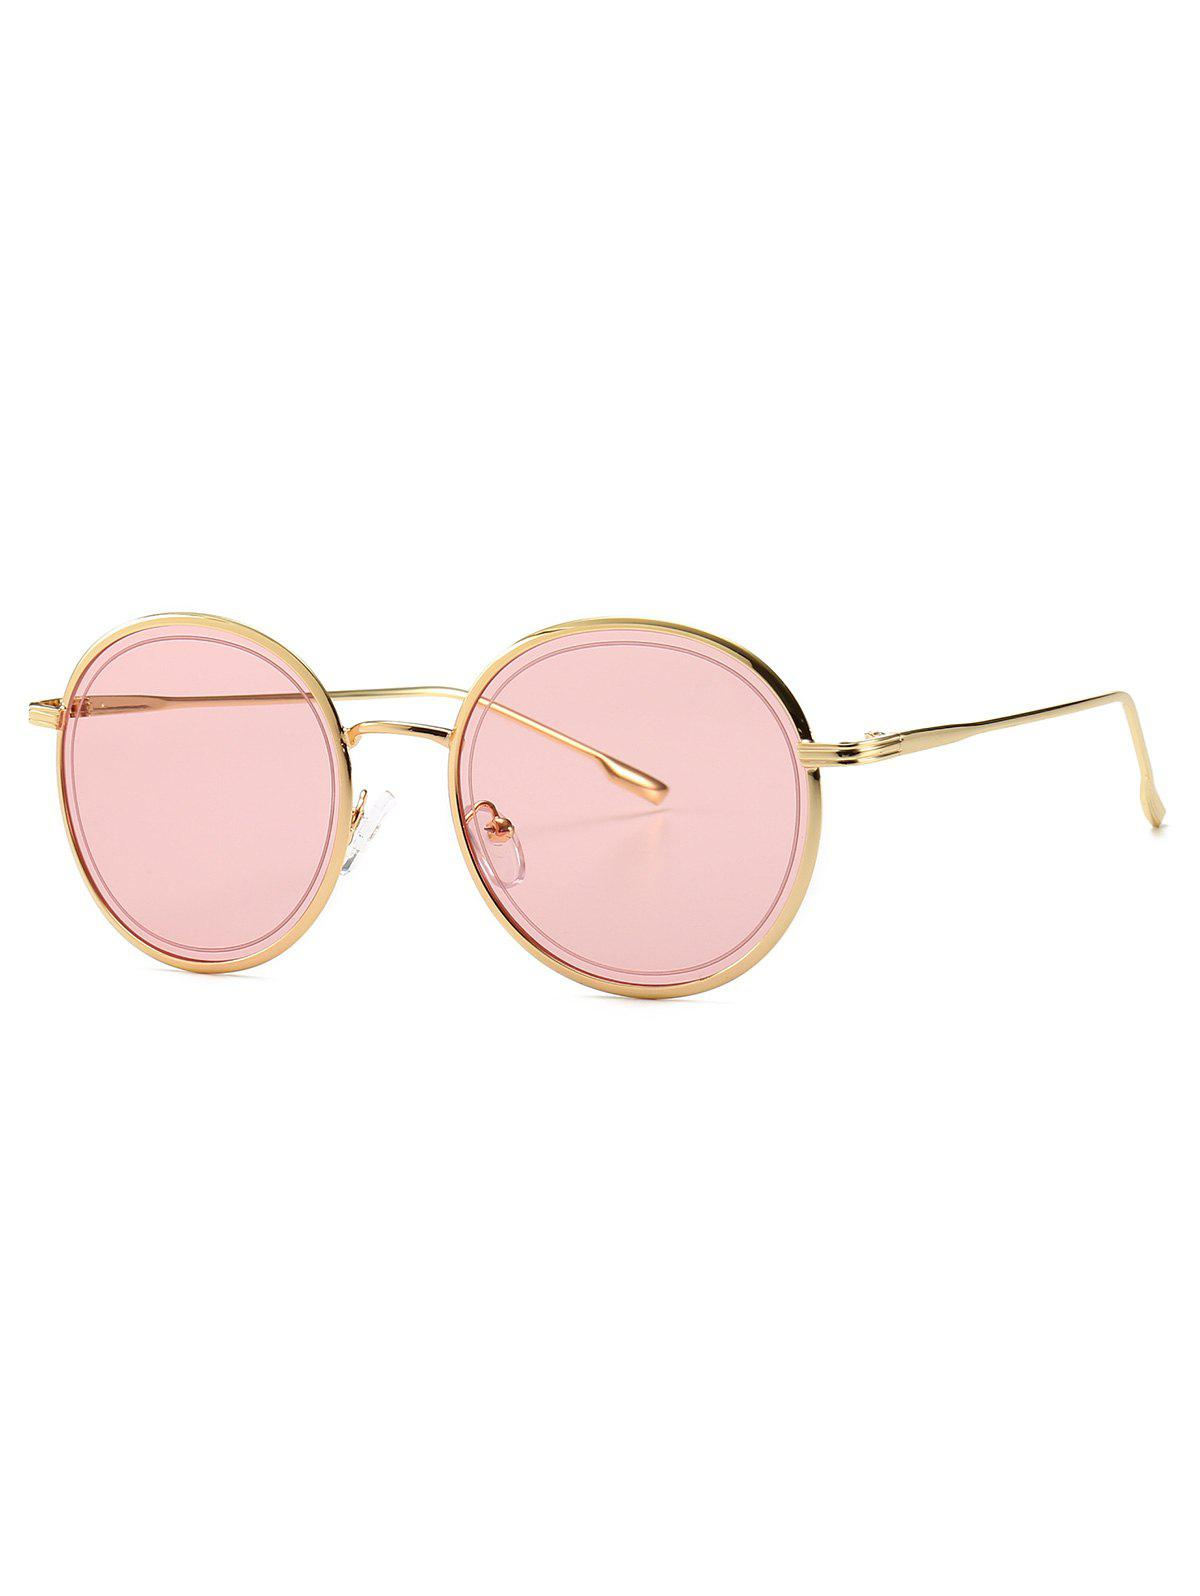 Online Ins Style Small Metal Frame Sunglasses